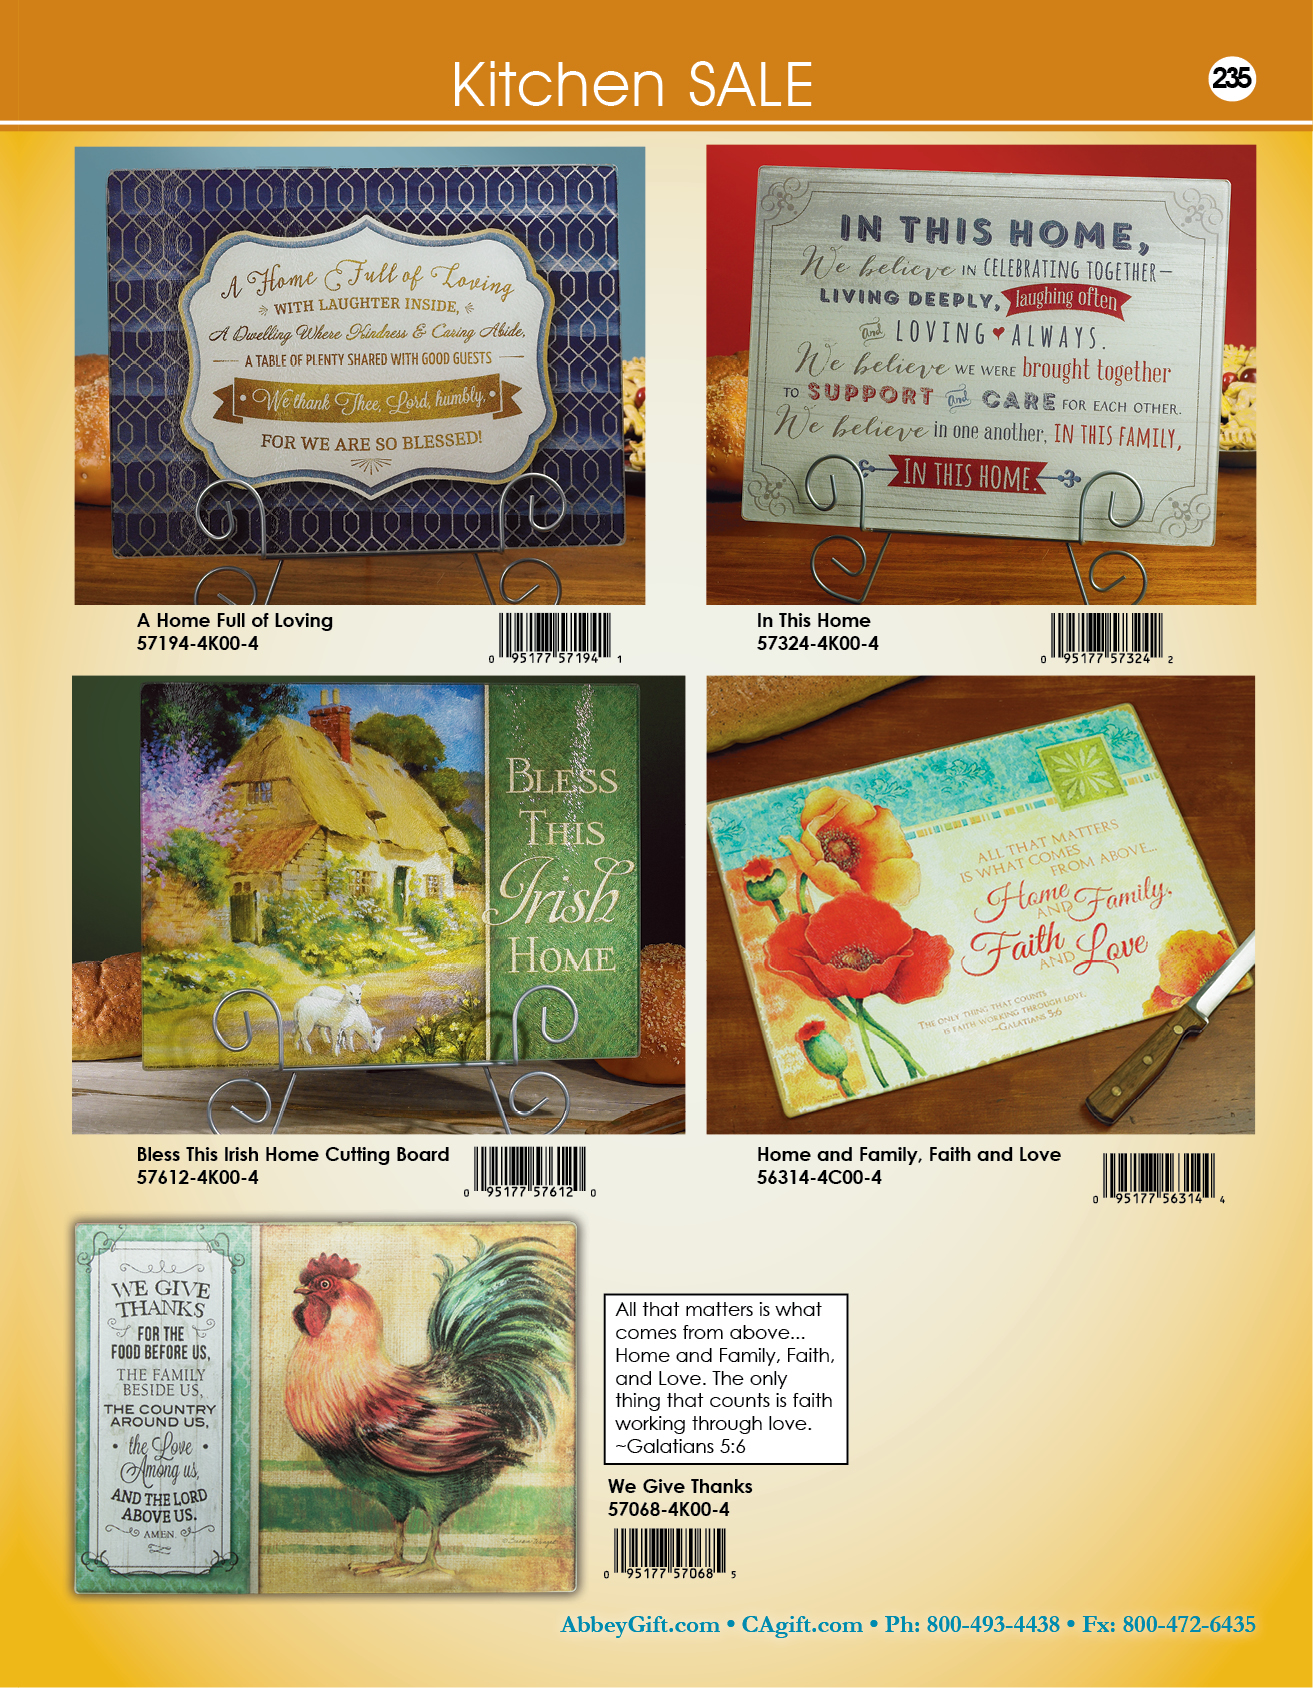 CA & Abbey Gift Pgs235